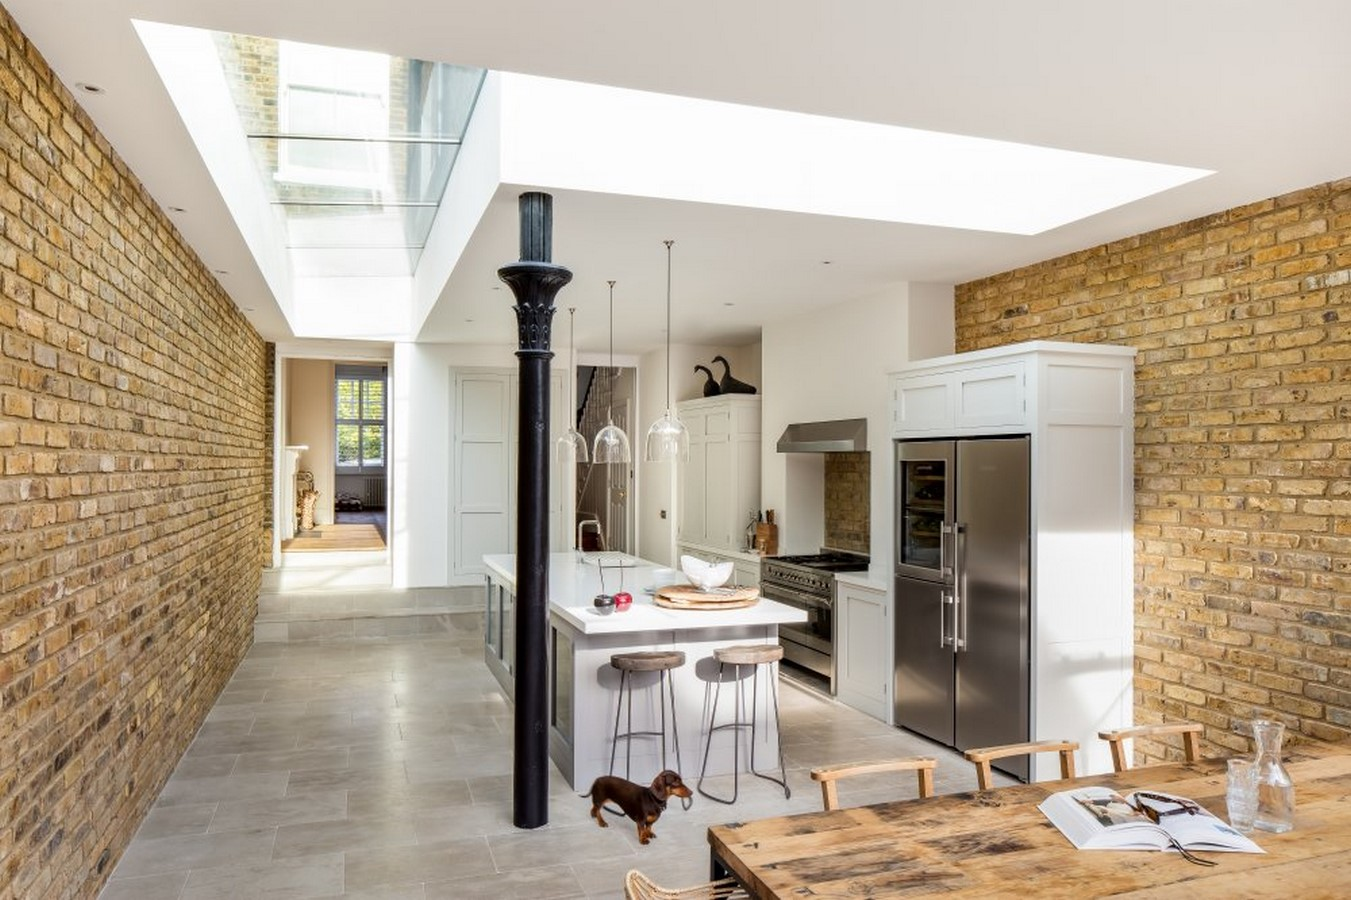 10 Benefits of natural light in architecture - Sheet3